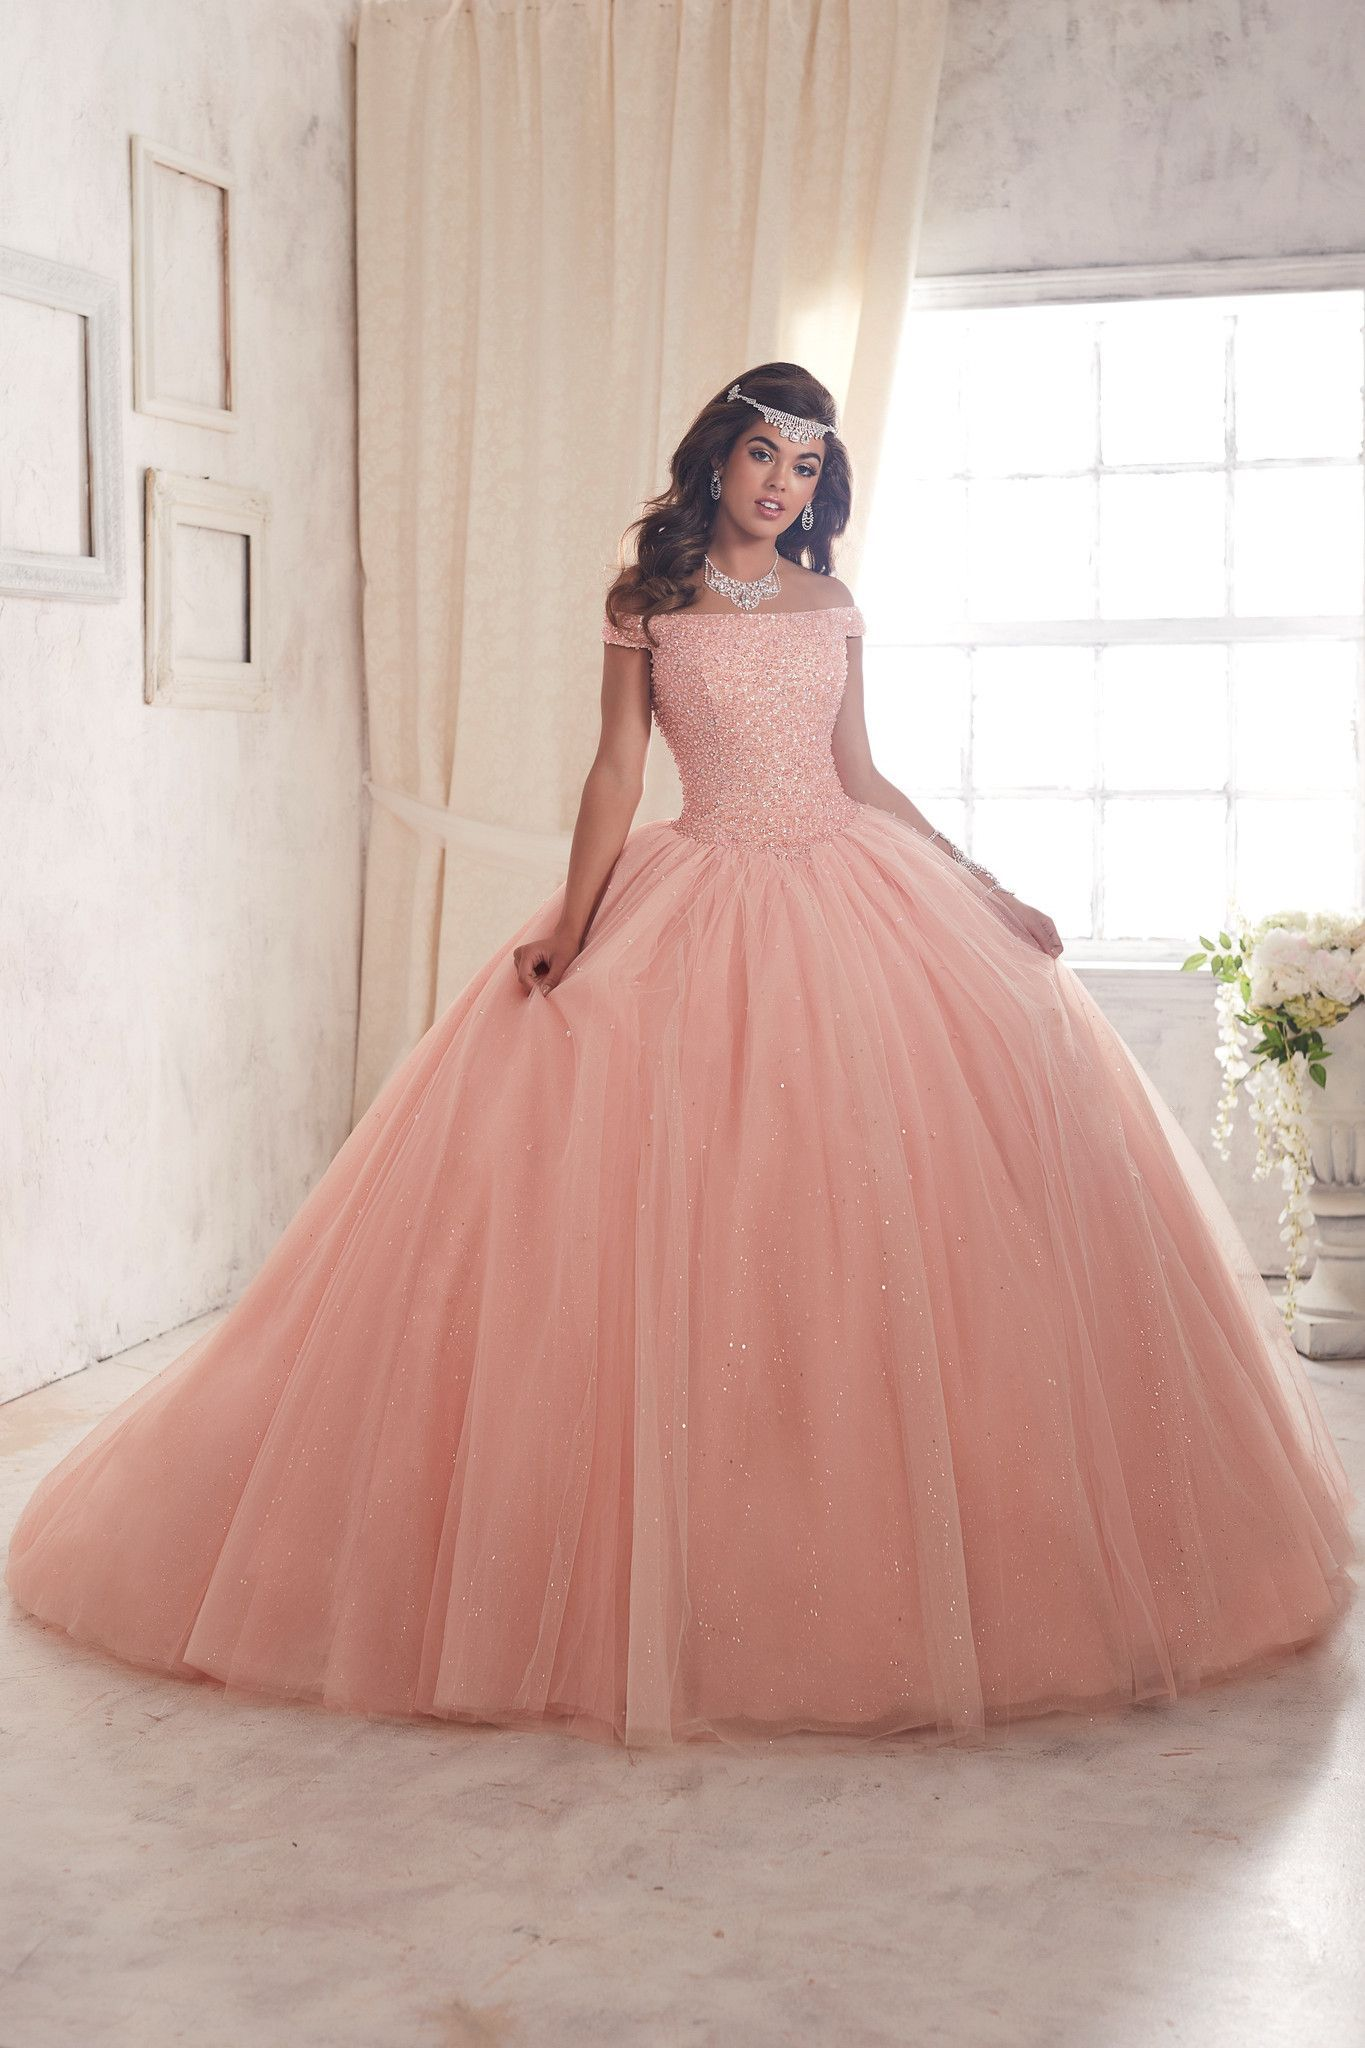 2d588342ff63 Dazzle the room in a House of Wu Quinceanera Dress Style Number 26844  during your Sweet 15 party or any formal event. Glimmering in showcase  fashion is this ...